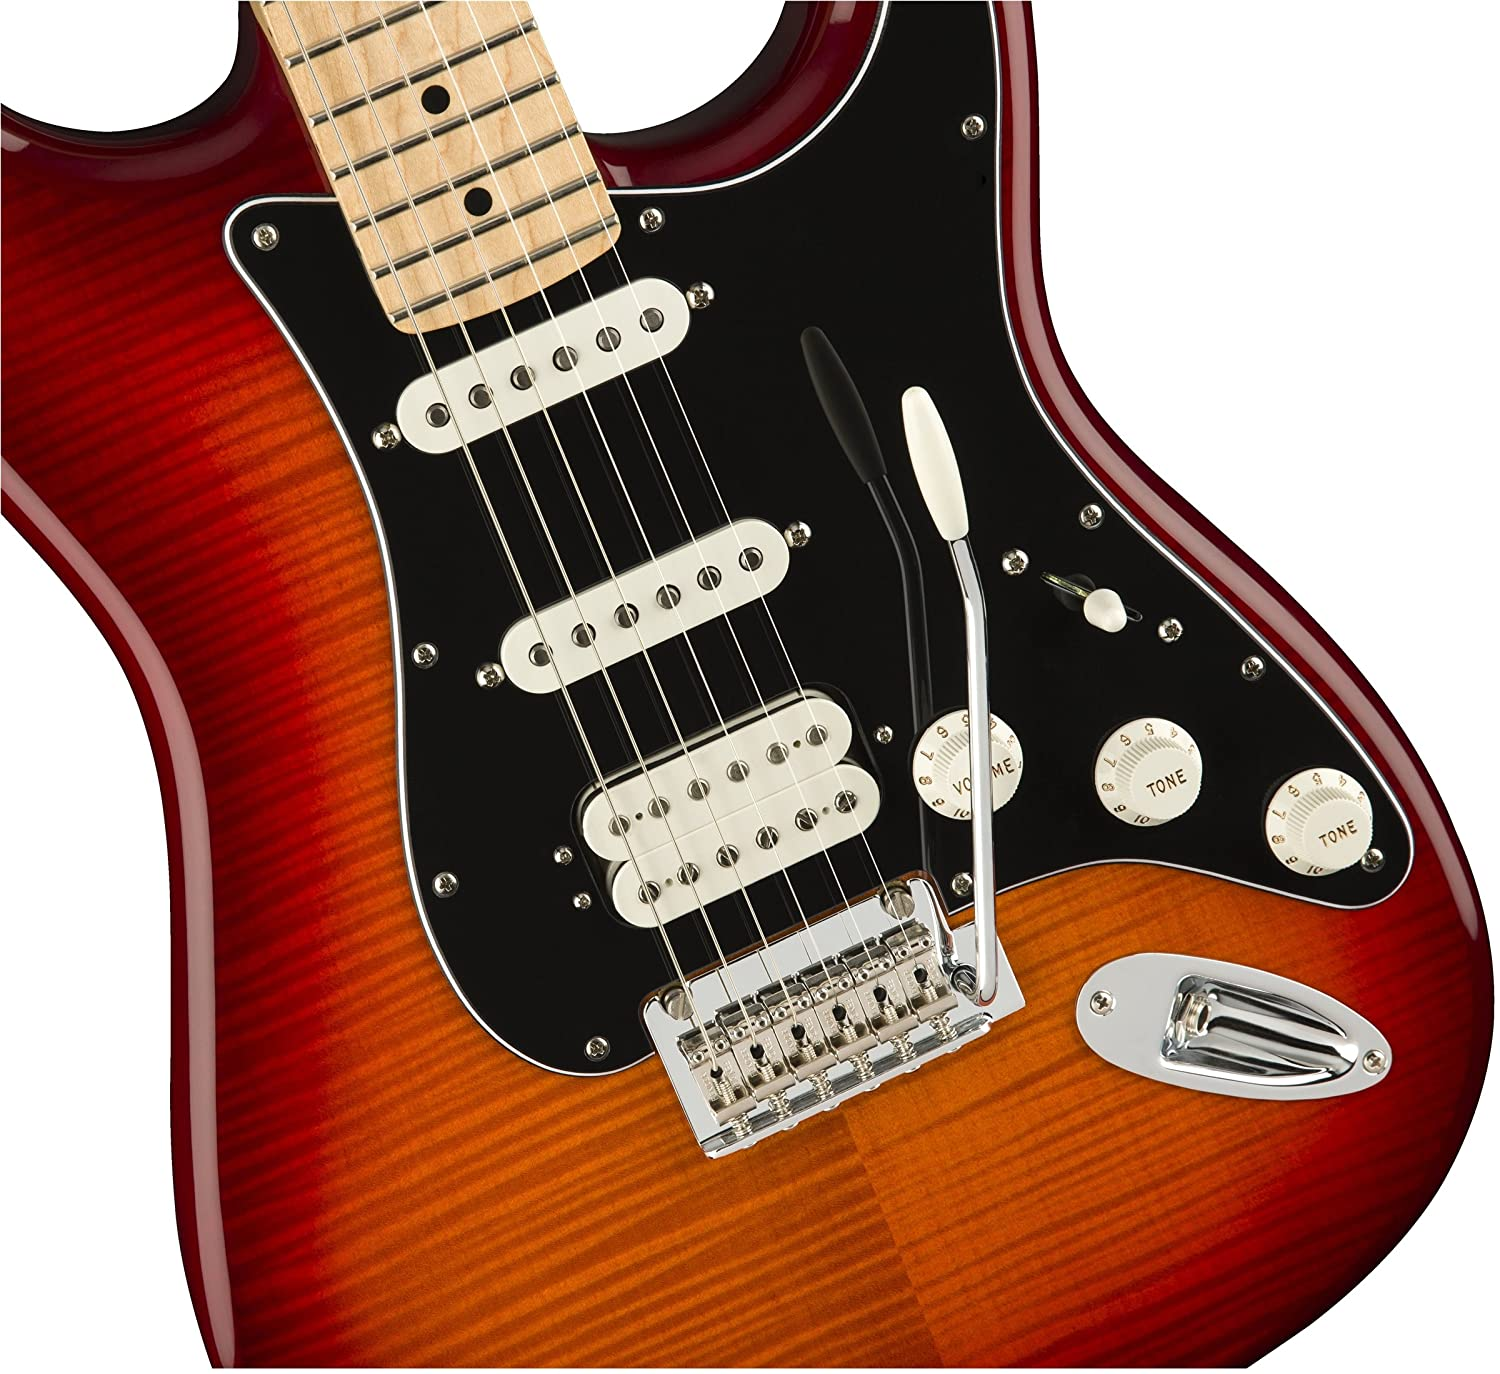 Amazon.com: Fender Player Stratocaster HSS Electric Guitar - Maple Fingerboard - Aged Cherry Burst - Plus Top: Musical Instruments